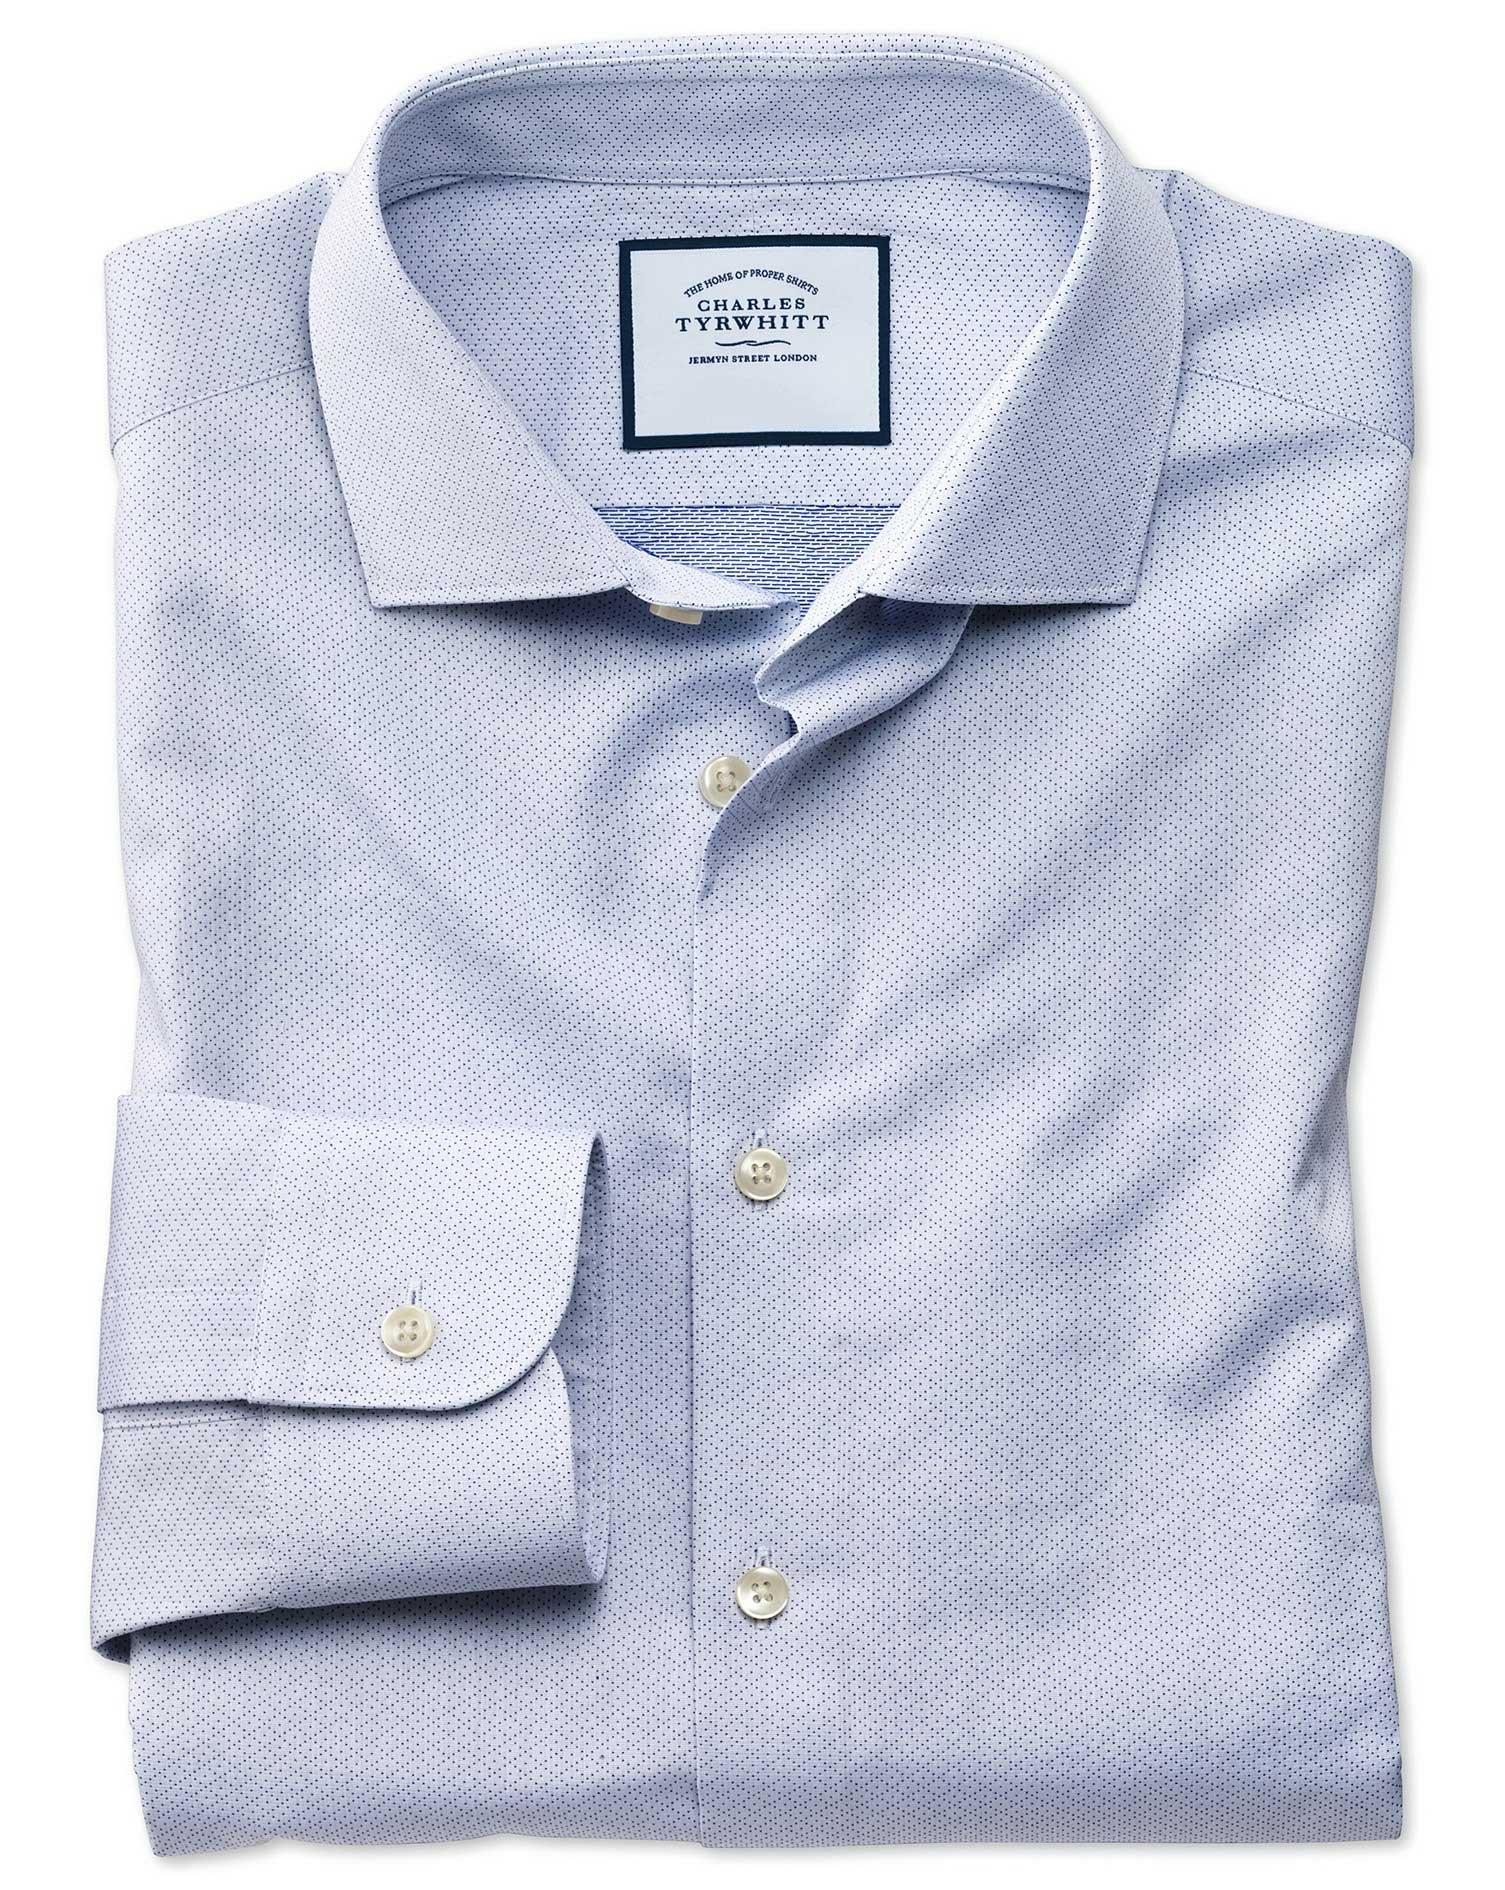 Classic Fit Business Casual Blue Diamond Dobby Egyptian Cotton Formal Shirt Single Cuff Size 16.5/33